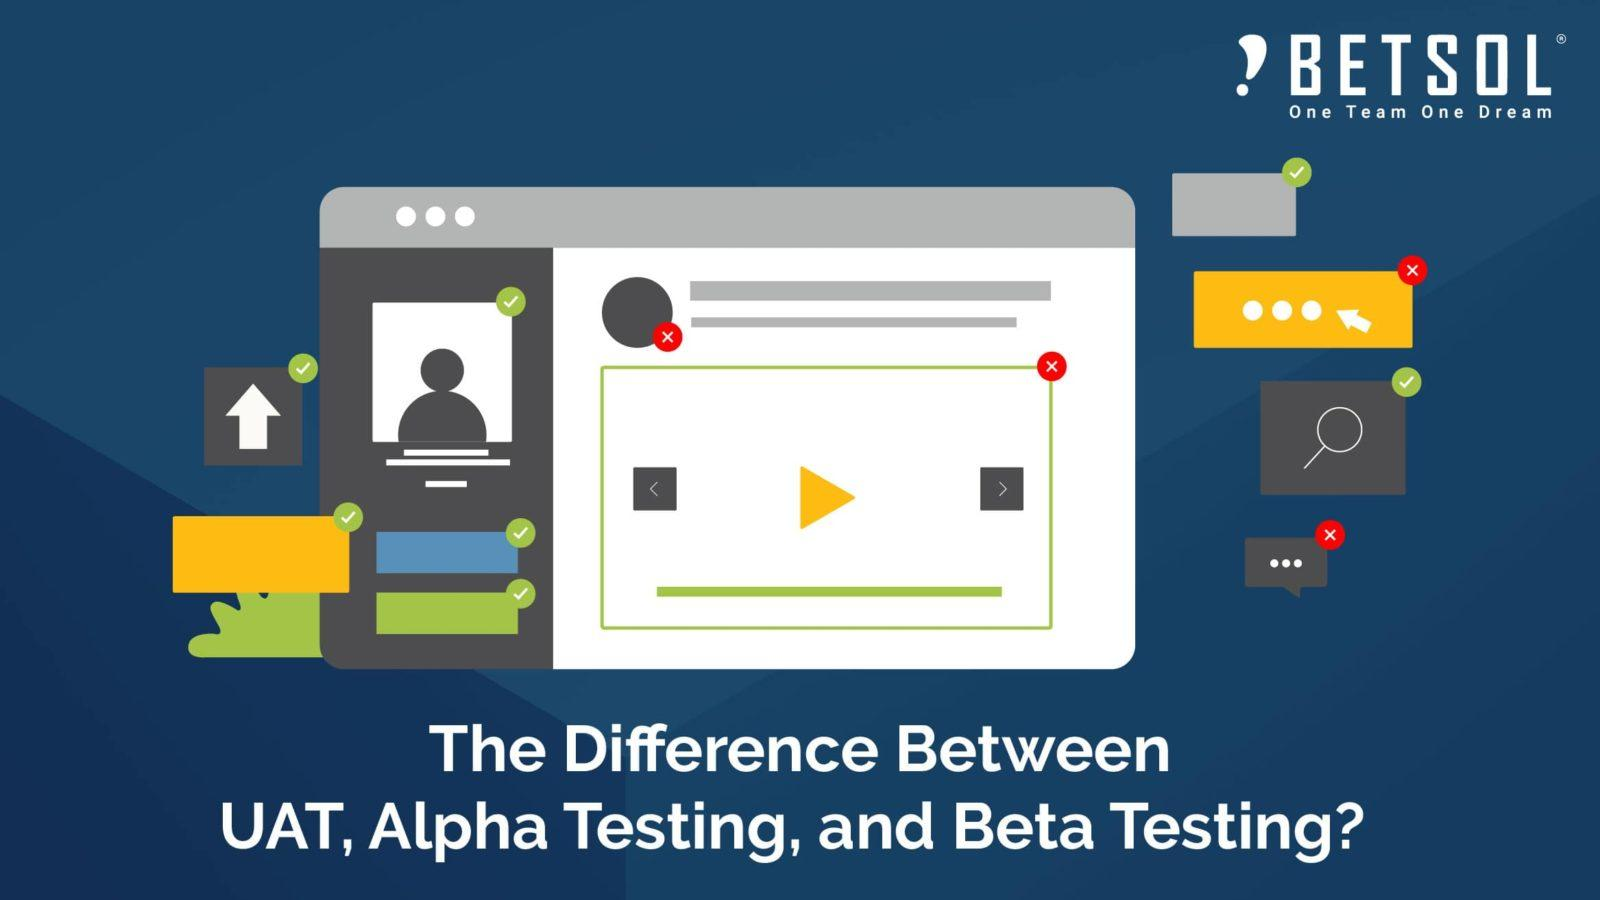 The difference between UAT, Alpha Testing and Beta Testing